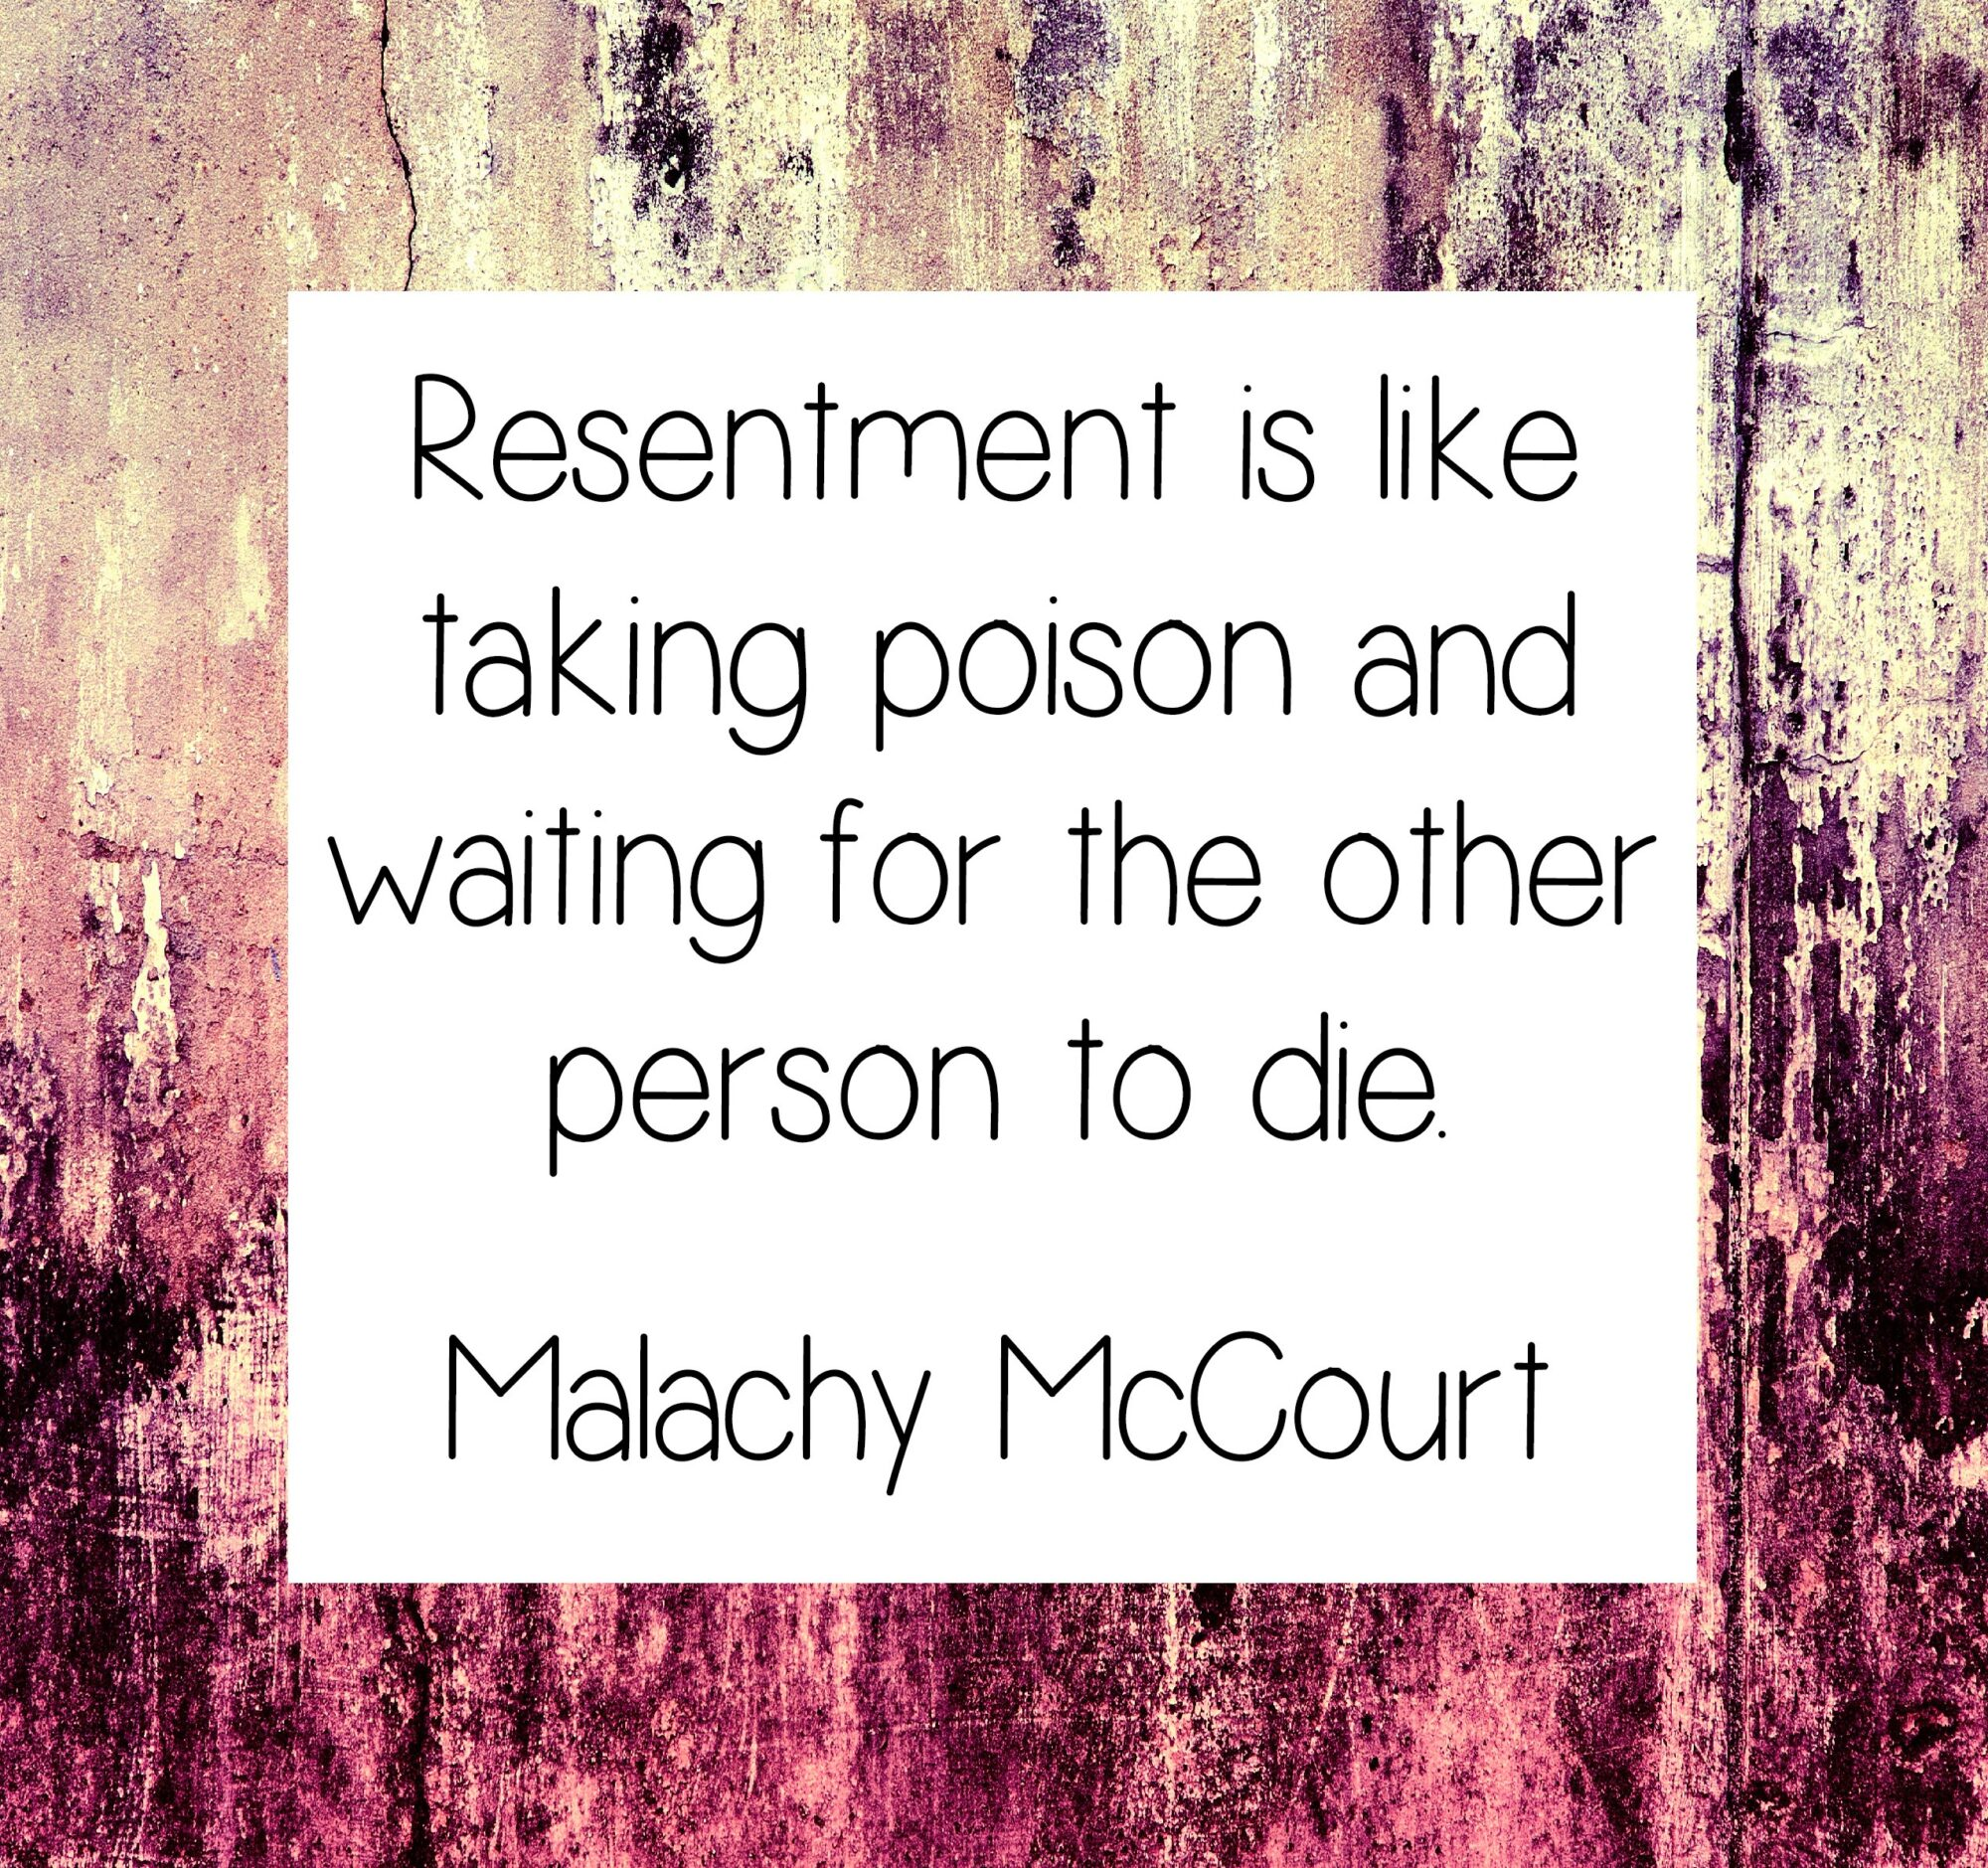 Resentment is like takingpoison and waiting for the other person to die